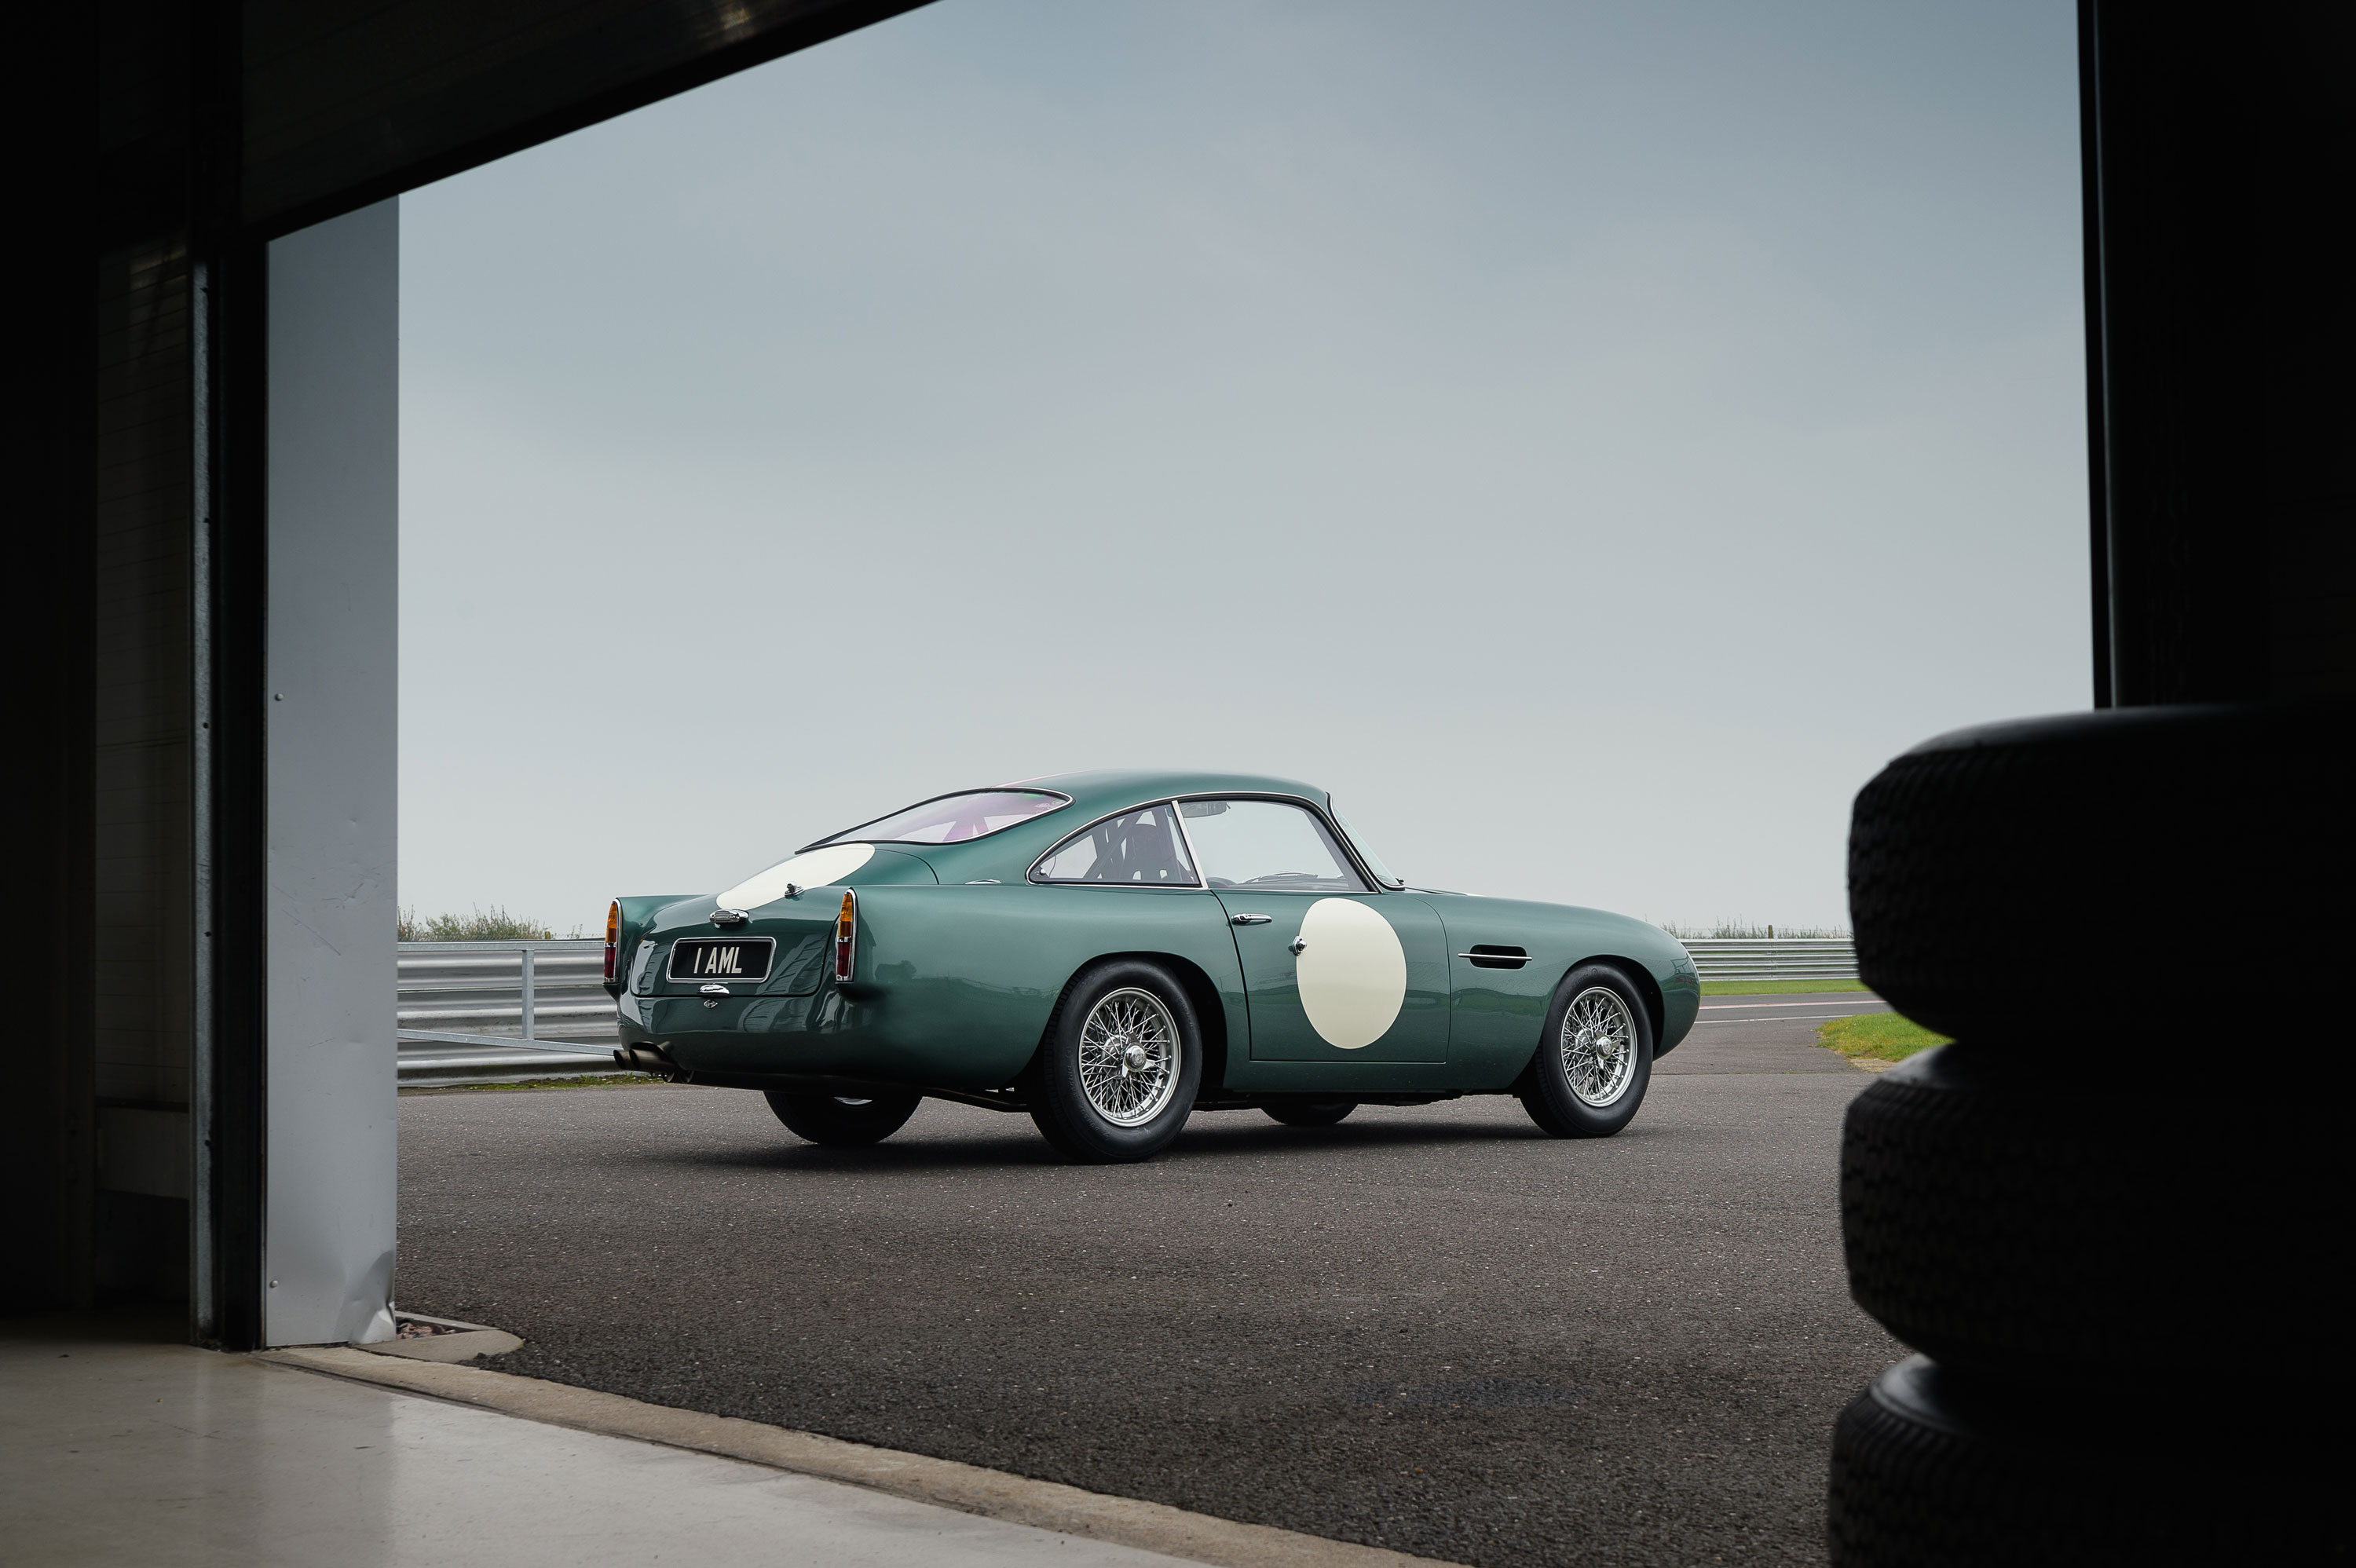 1959 Aston Martin DB4 GT coming out of the garage